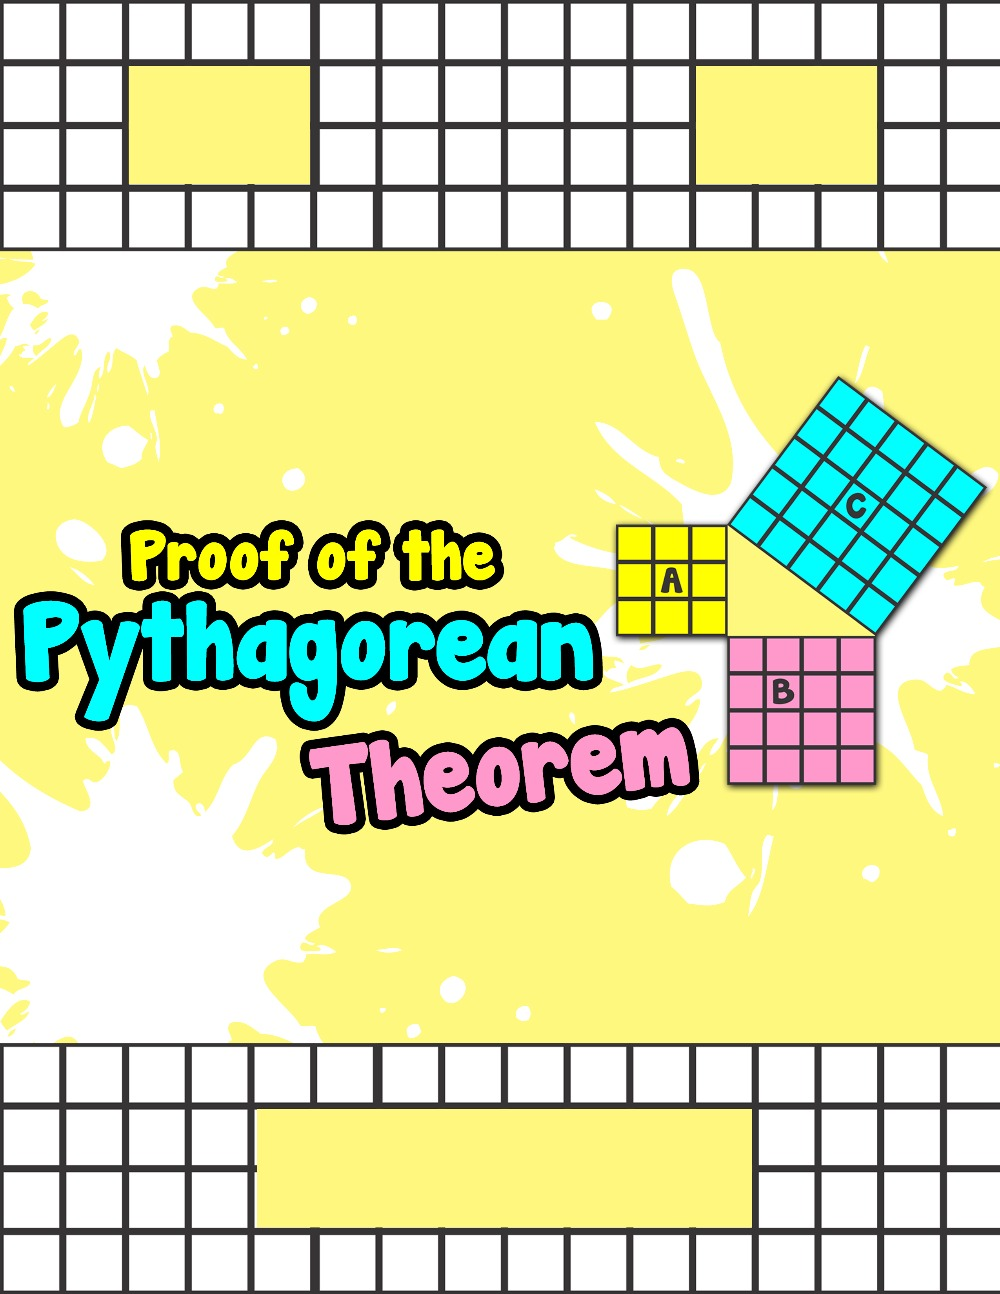 ​Proof of the Pythagorean Theorem